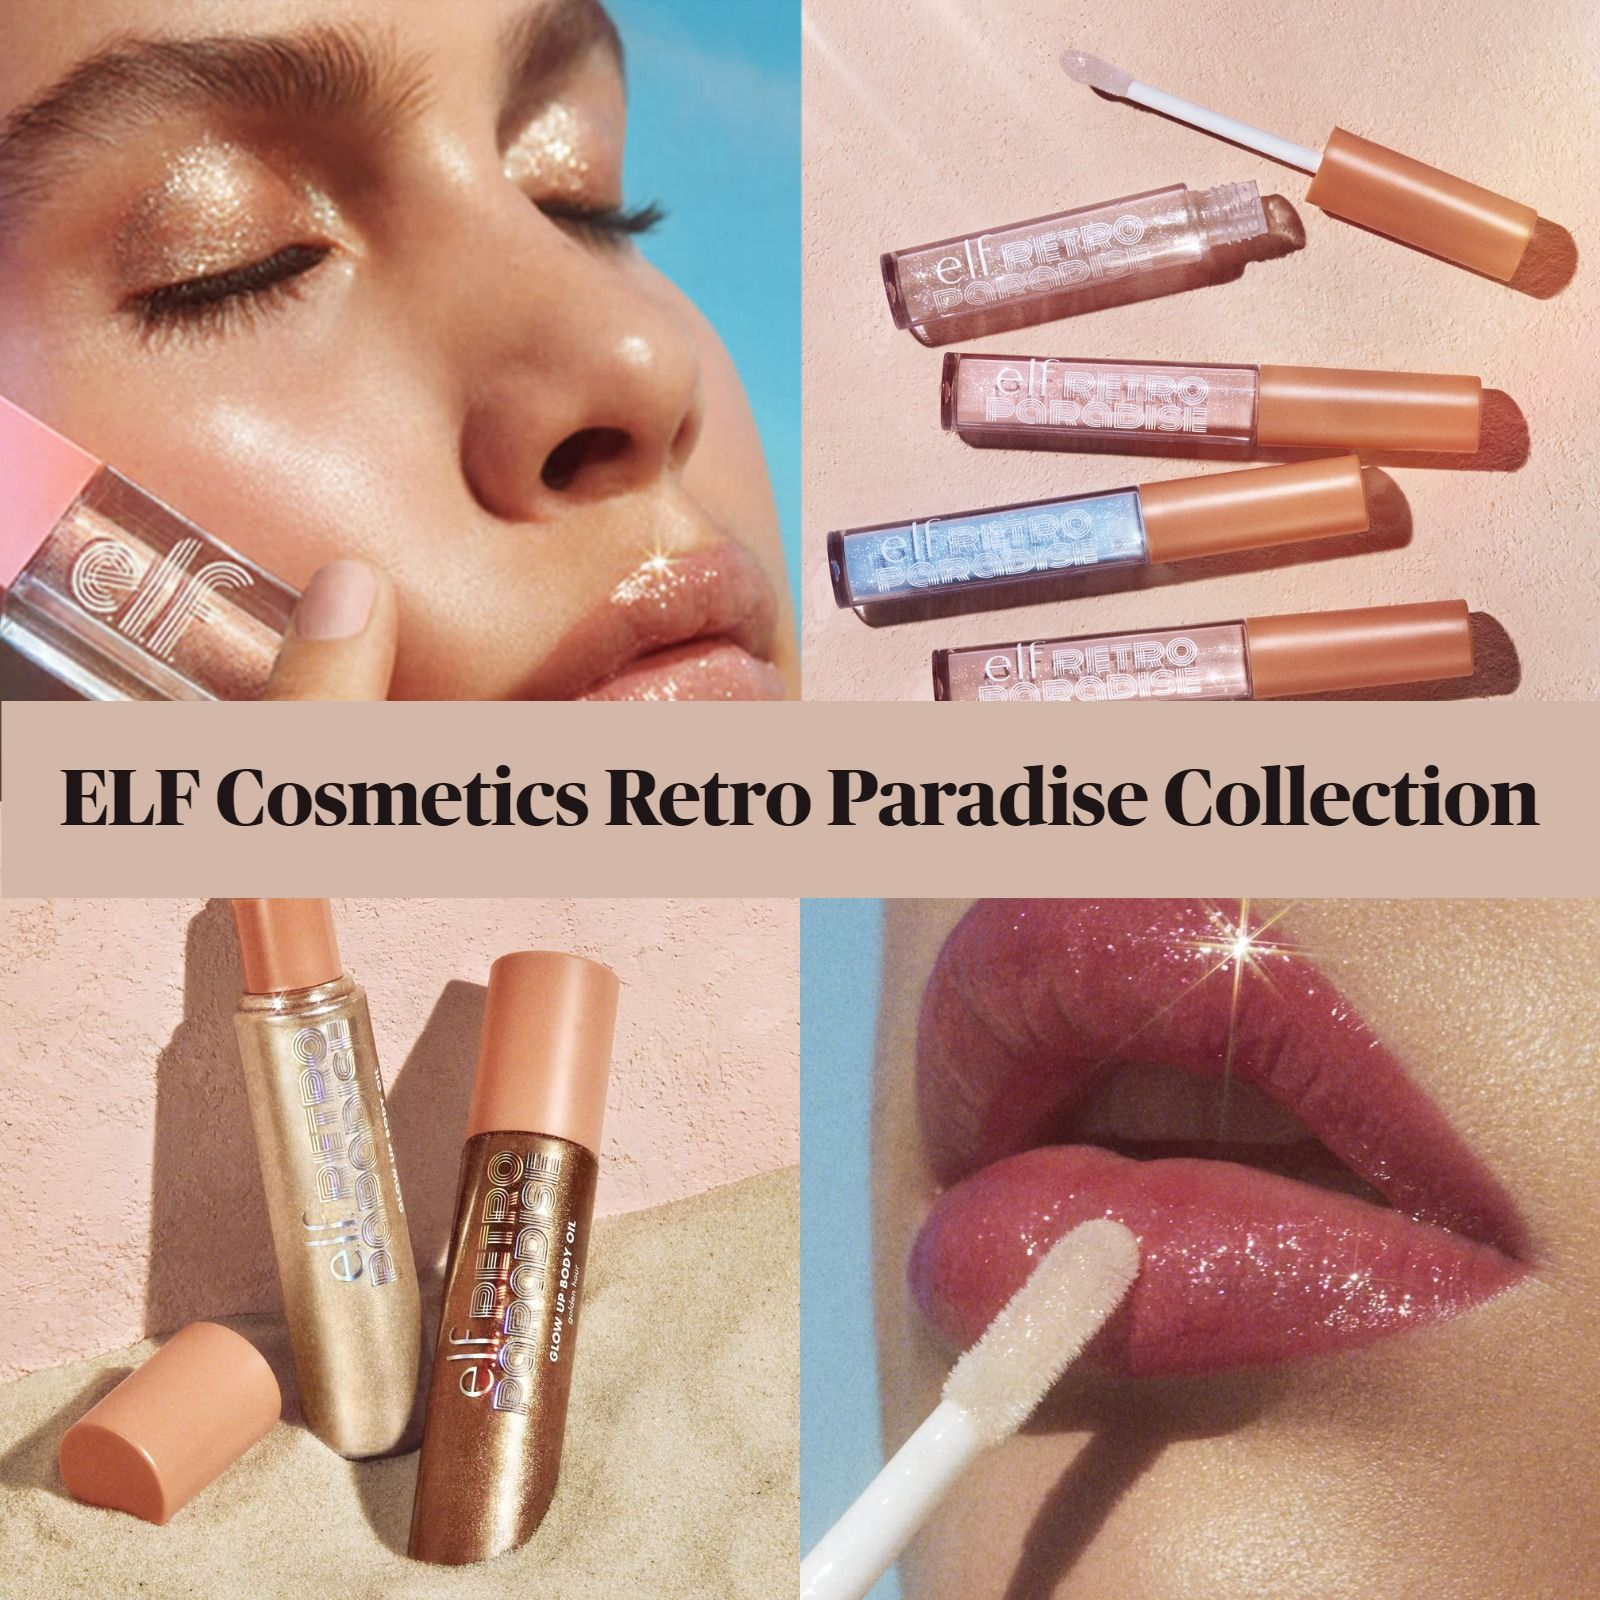 Get The Scoop On The New ELF Retro Paradise Collection